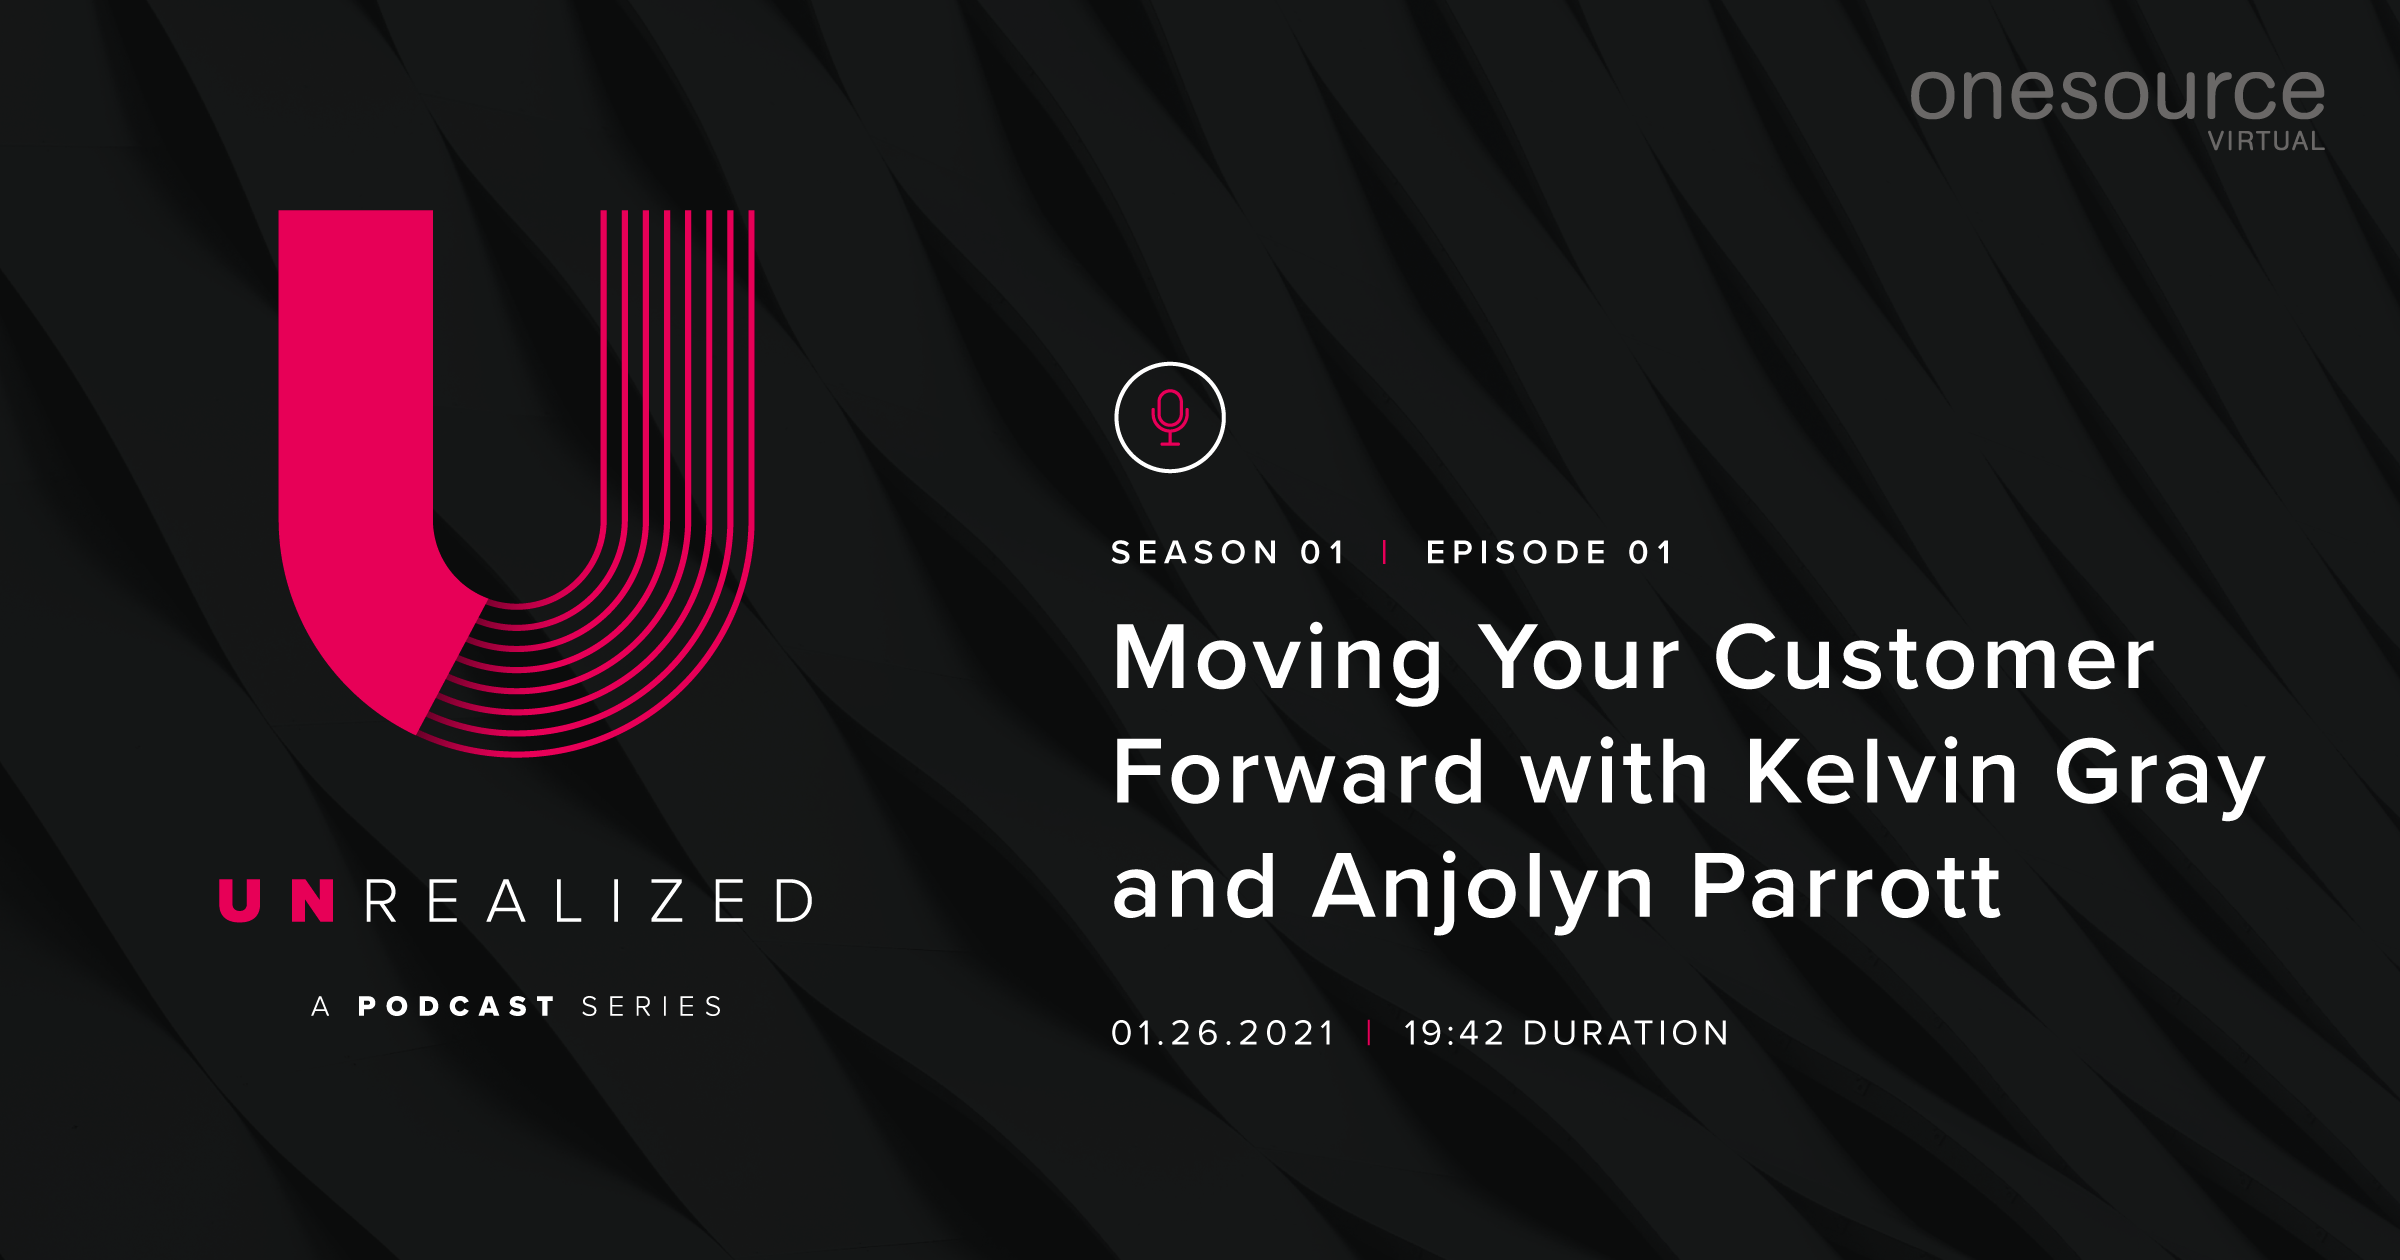 Moving Your Customer Forward with Kelvin Gray and Anjolyn Parrott